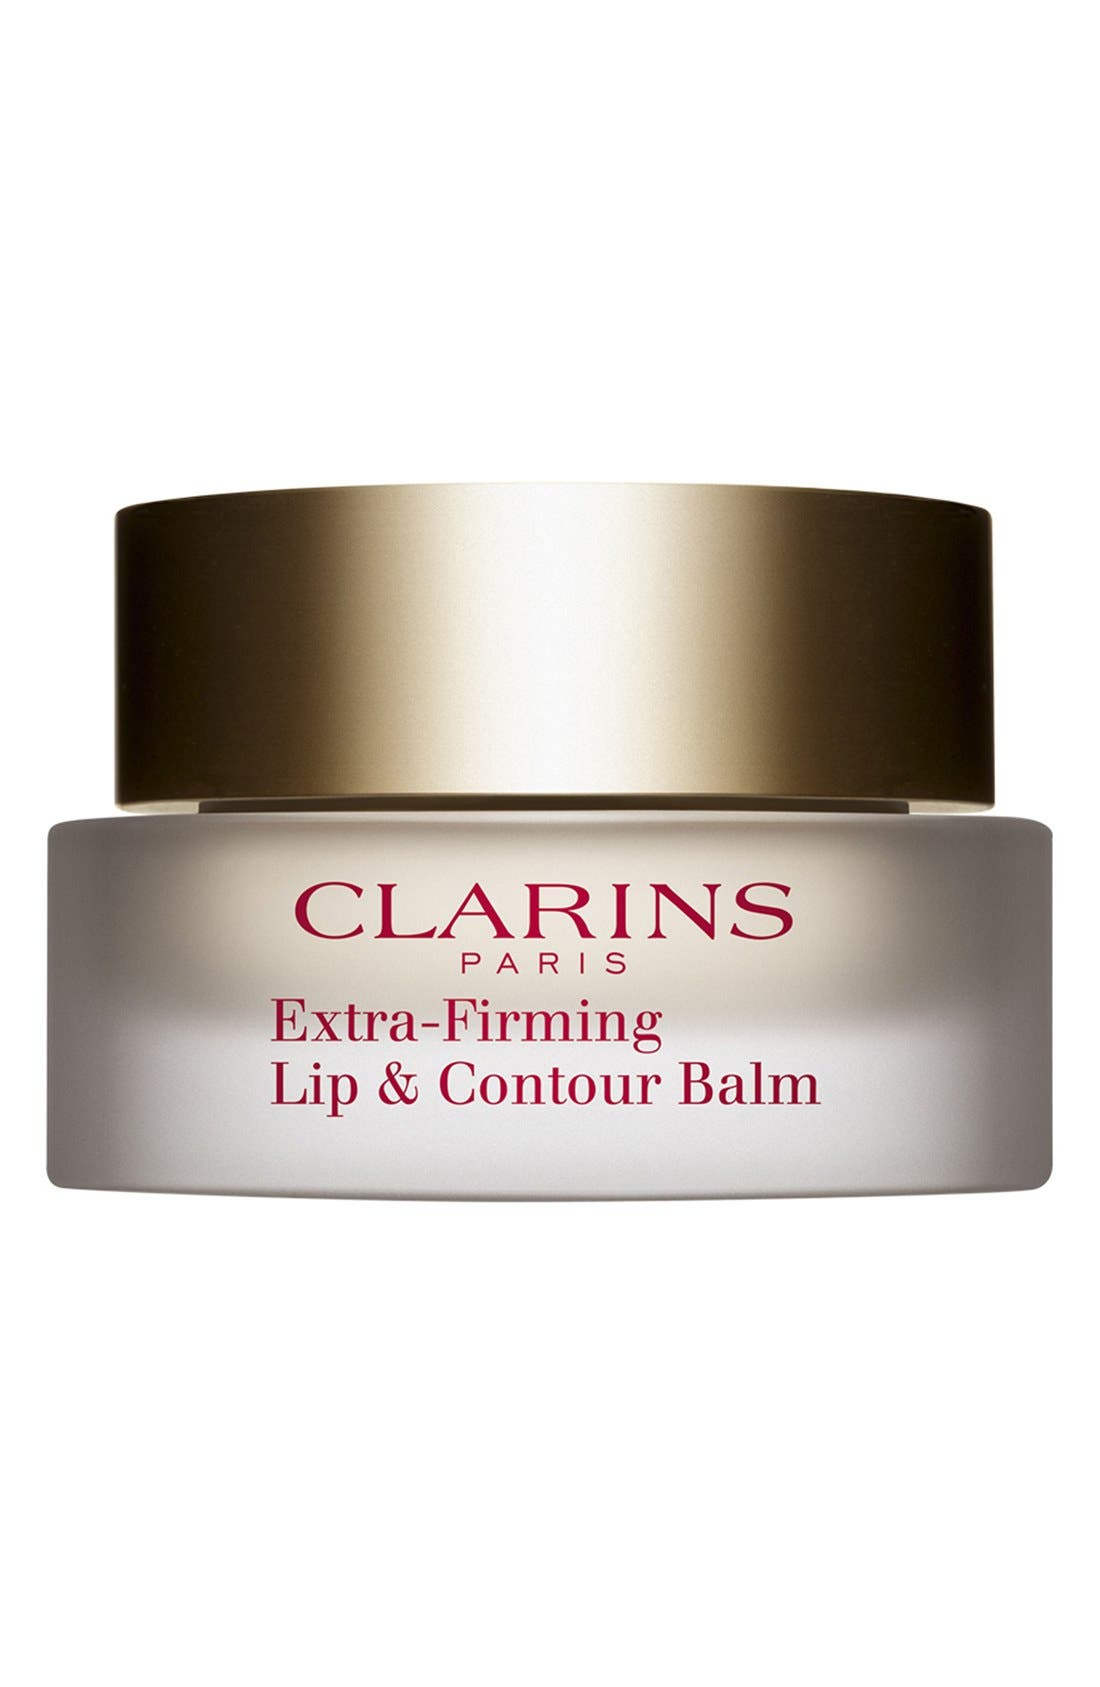 Extra-Firming Lip & Contour Balm,                         Main,                         color, 000